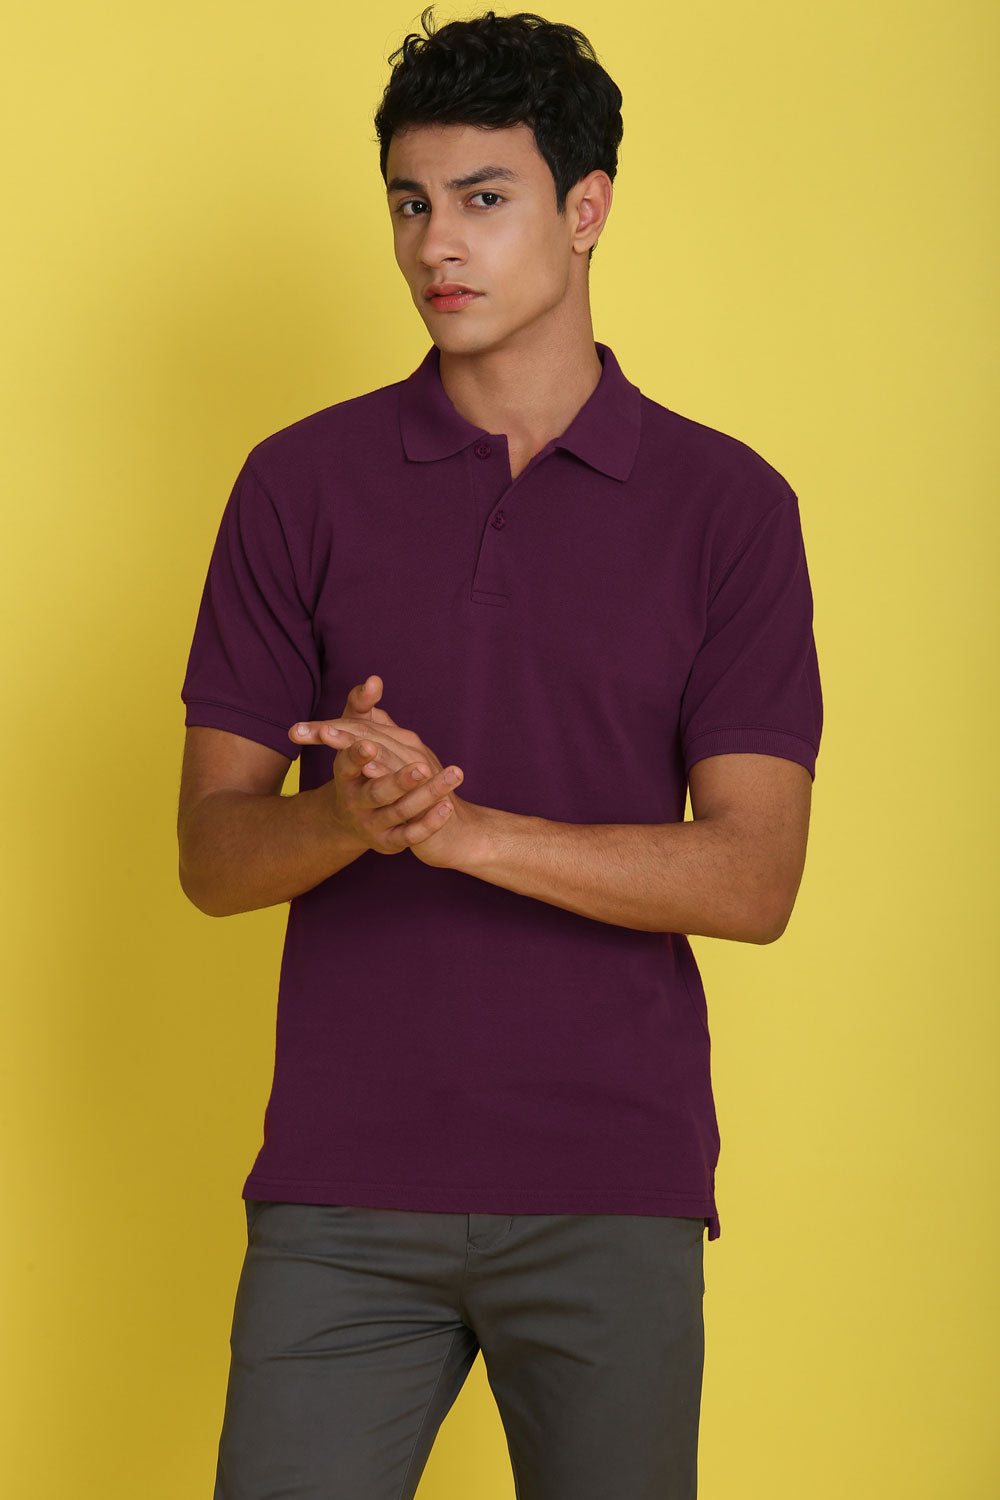 Nebraska Violet Plum Pique Men's Polo Tshirt